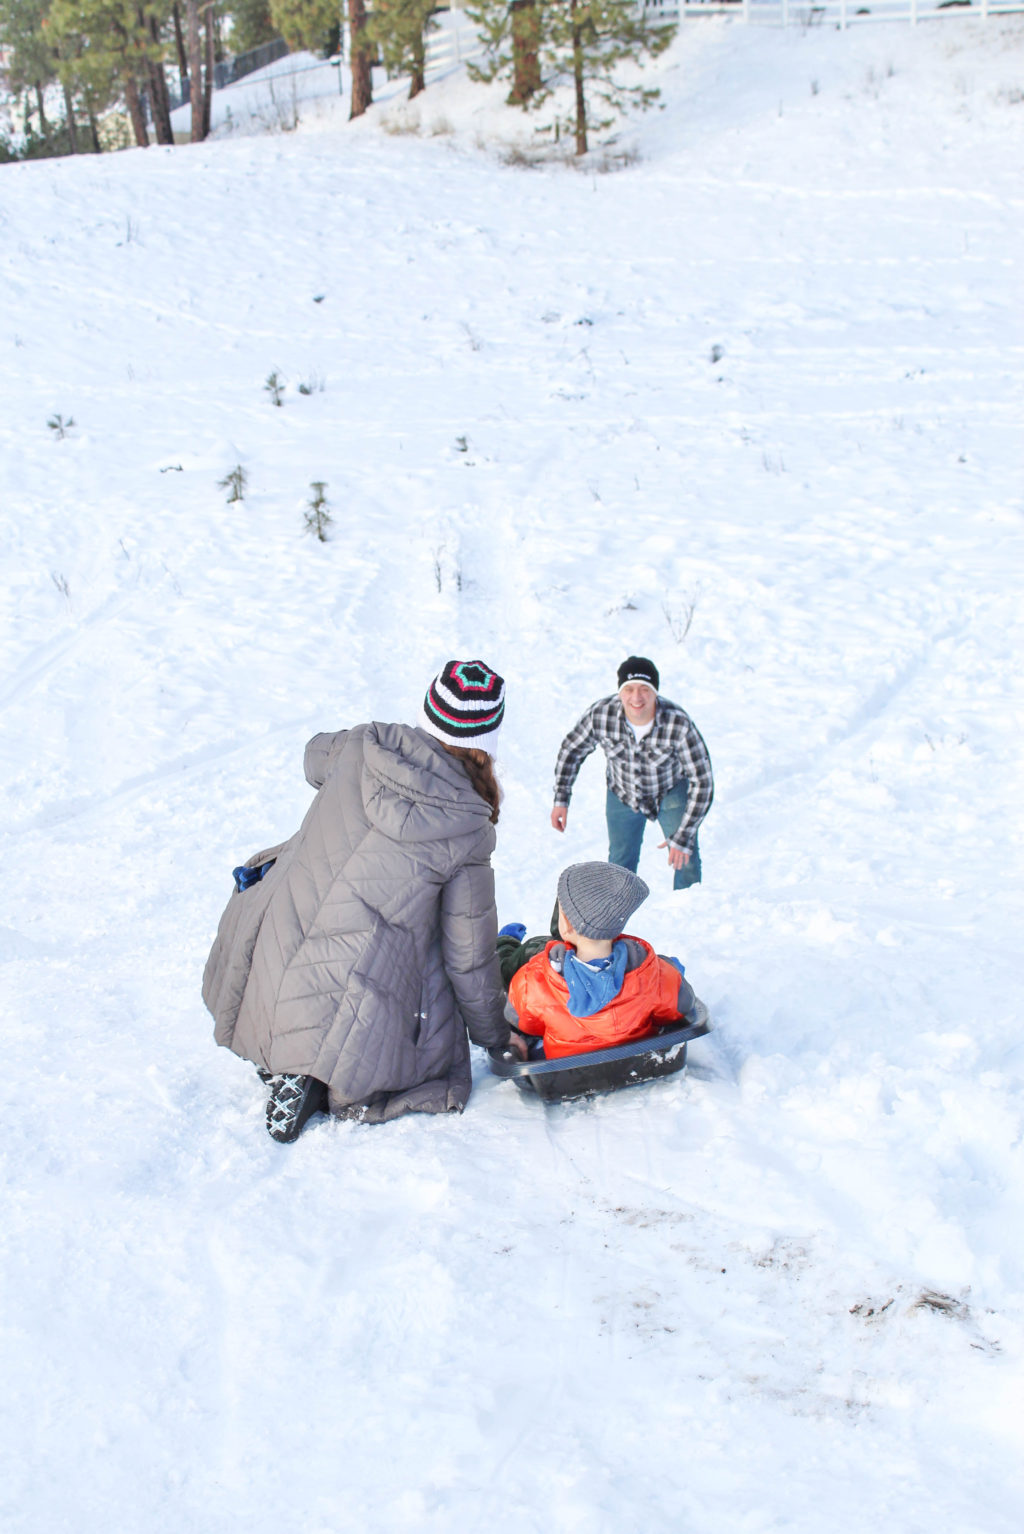 The thought of sledding with toddlers can be tough but, when you get out there, it can be so much fun! Encouragement to get out with your toddler and enjoy!